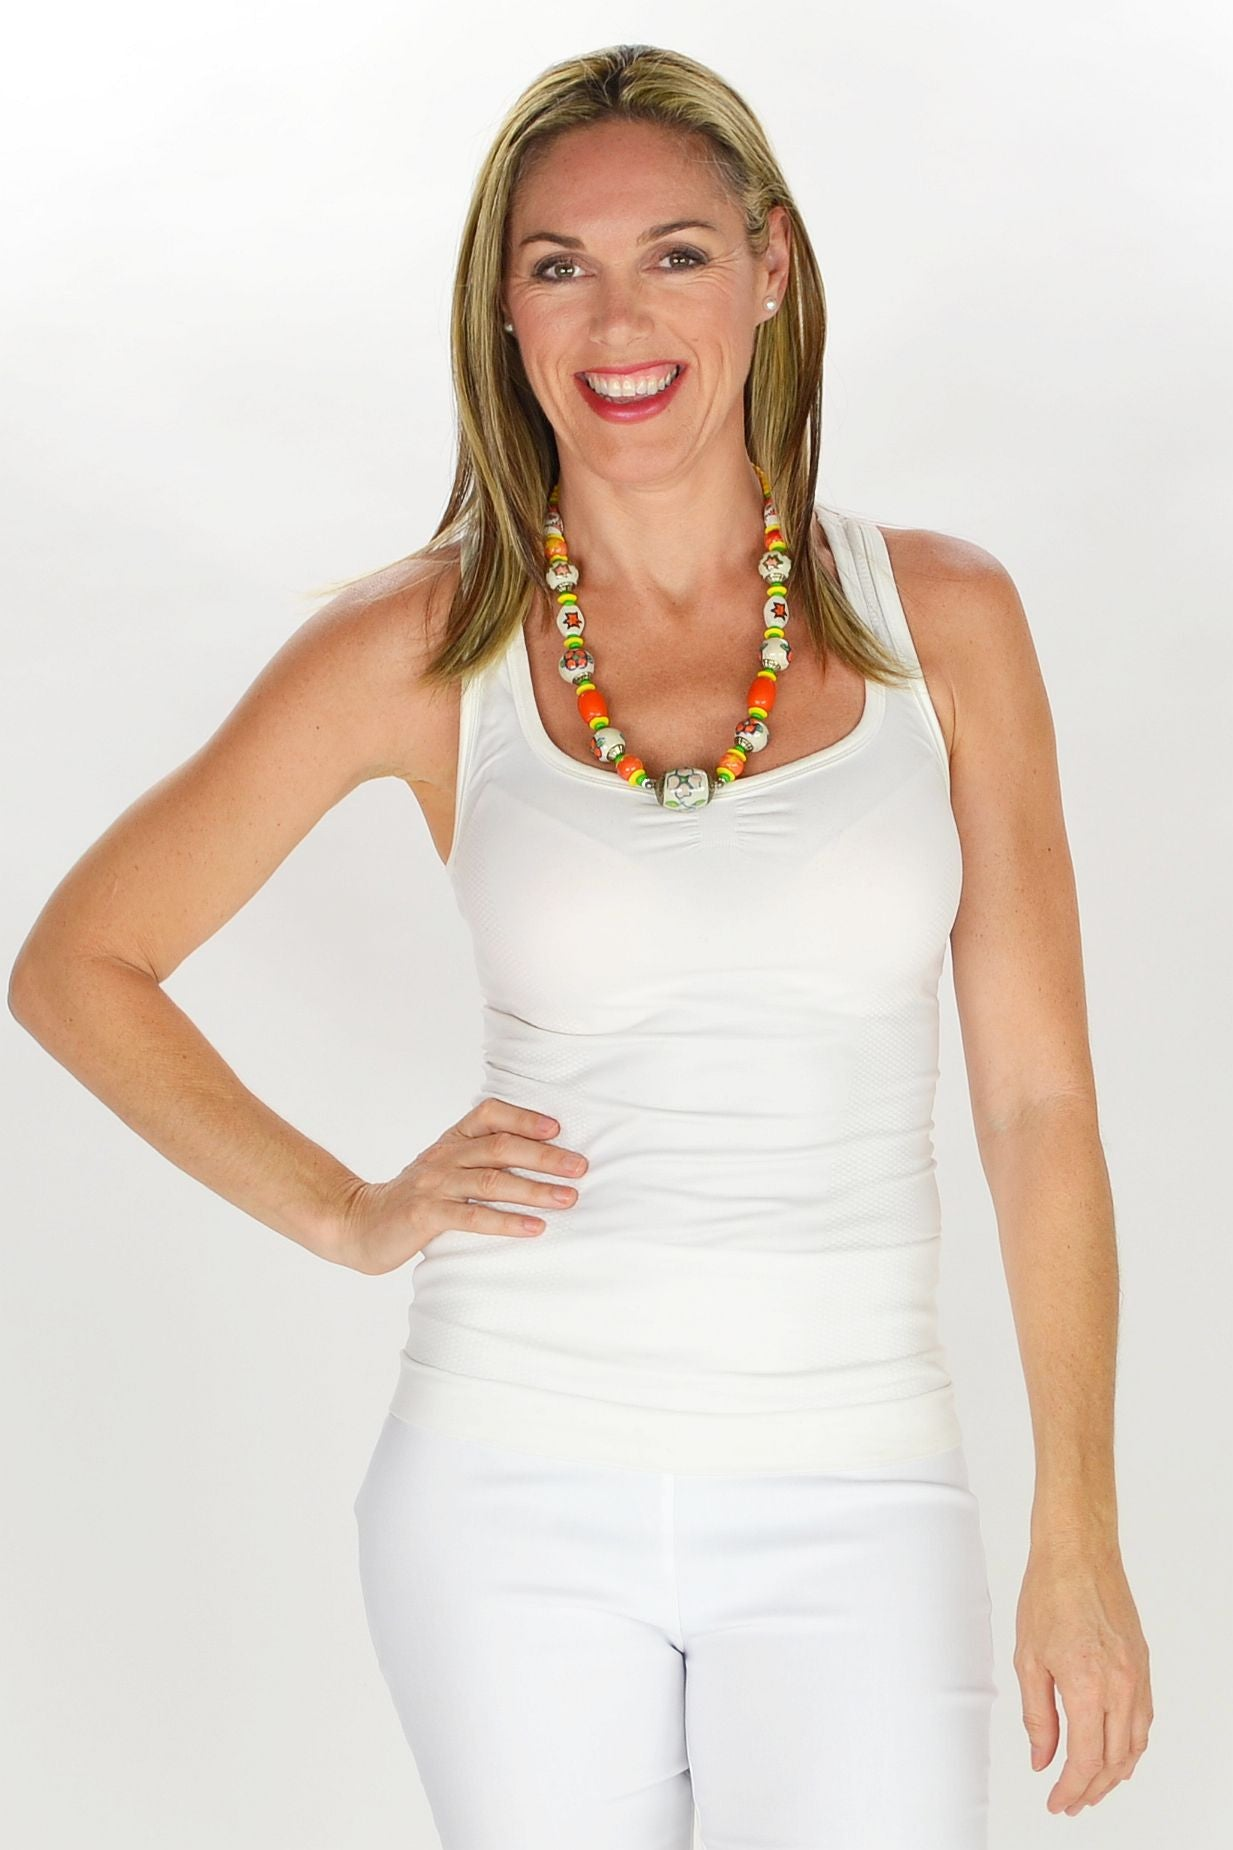 Orange Ceramic Beads Necklace - at I Love Tunics @ www.ilovetunics.com = Number One! Tunics Destination